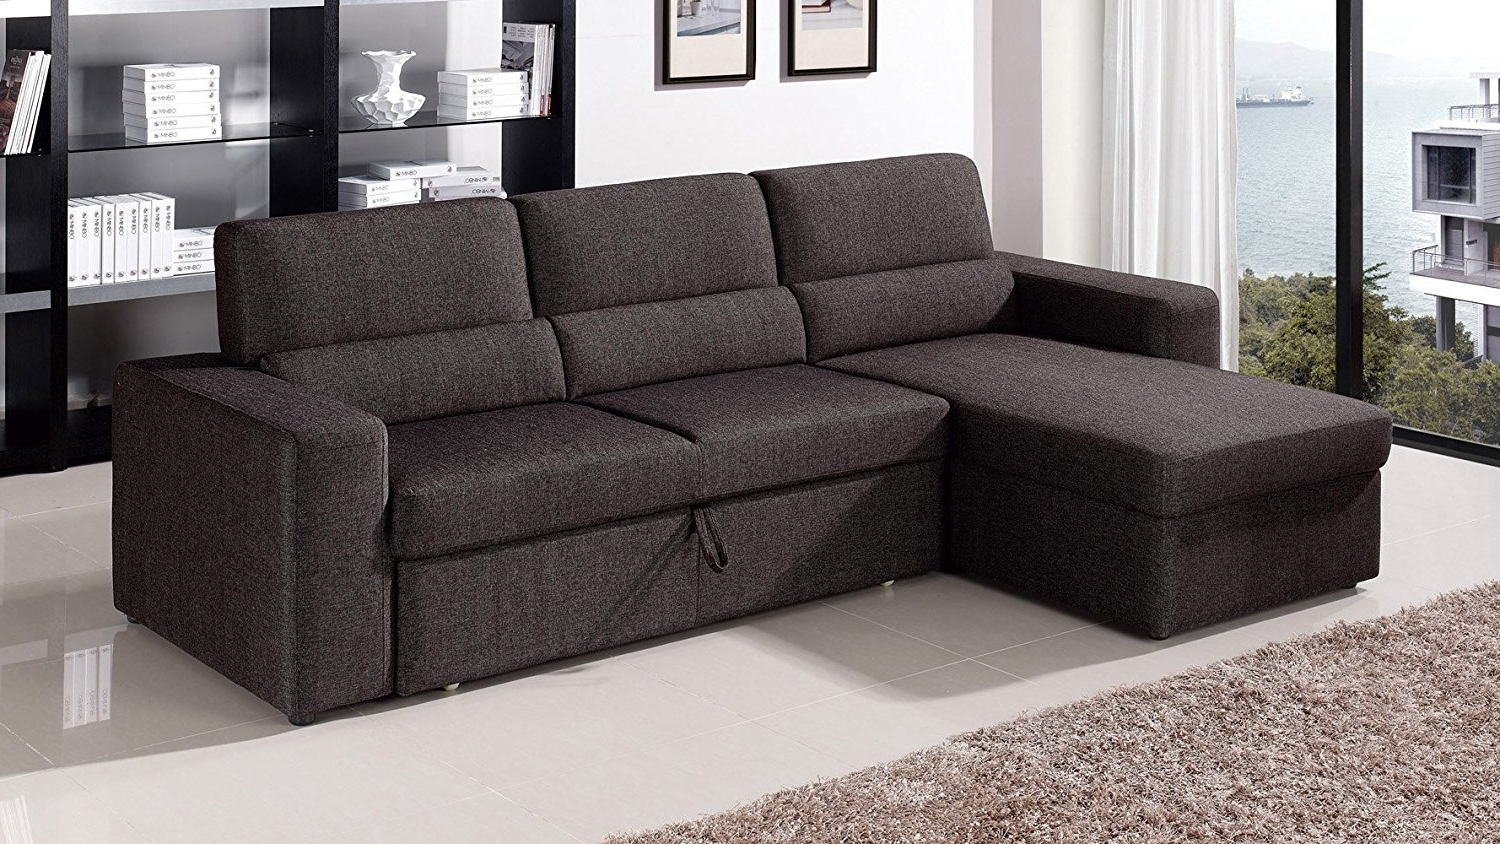 Newest Sectional Sofas At Amazon Within Amazon: Black/brown Clubber Sleeper Sectional Sofa – Right (View 10 of 15)